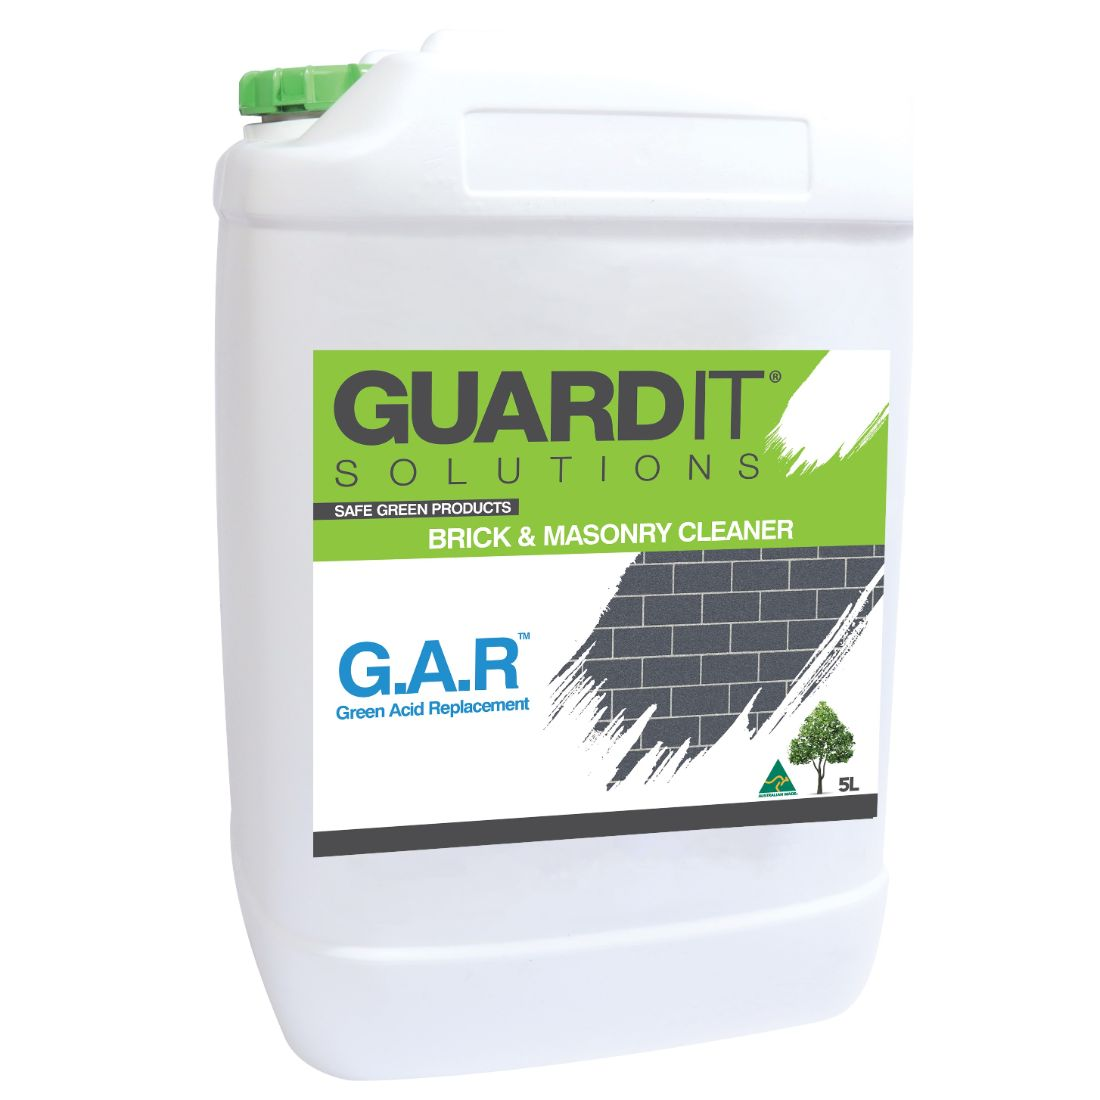 5L Green Acid Replacement Concrete Remover